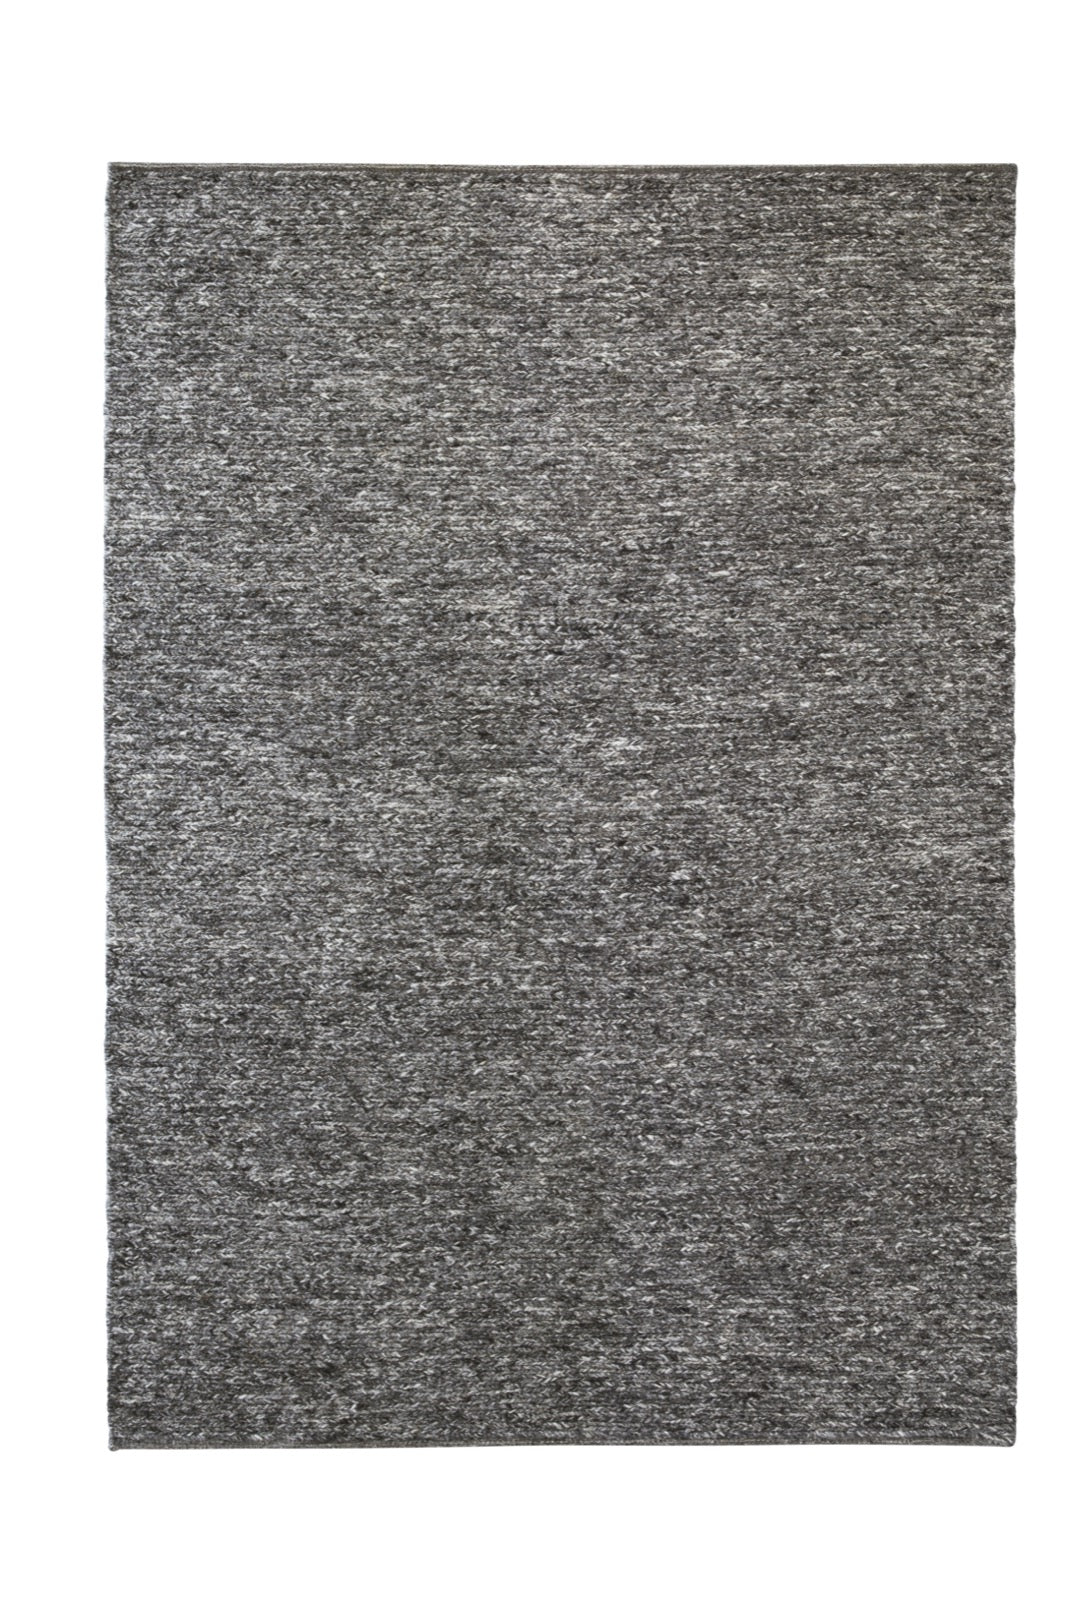 Pepper Andorra - Armadillo Floor Rug